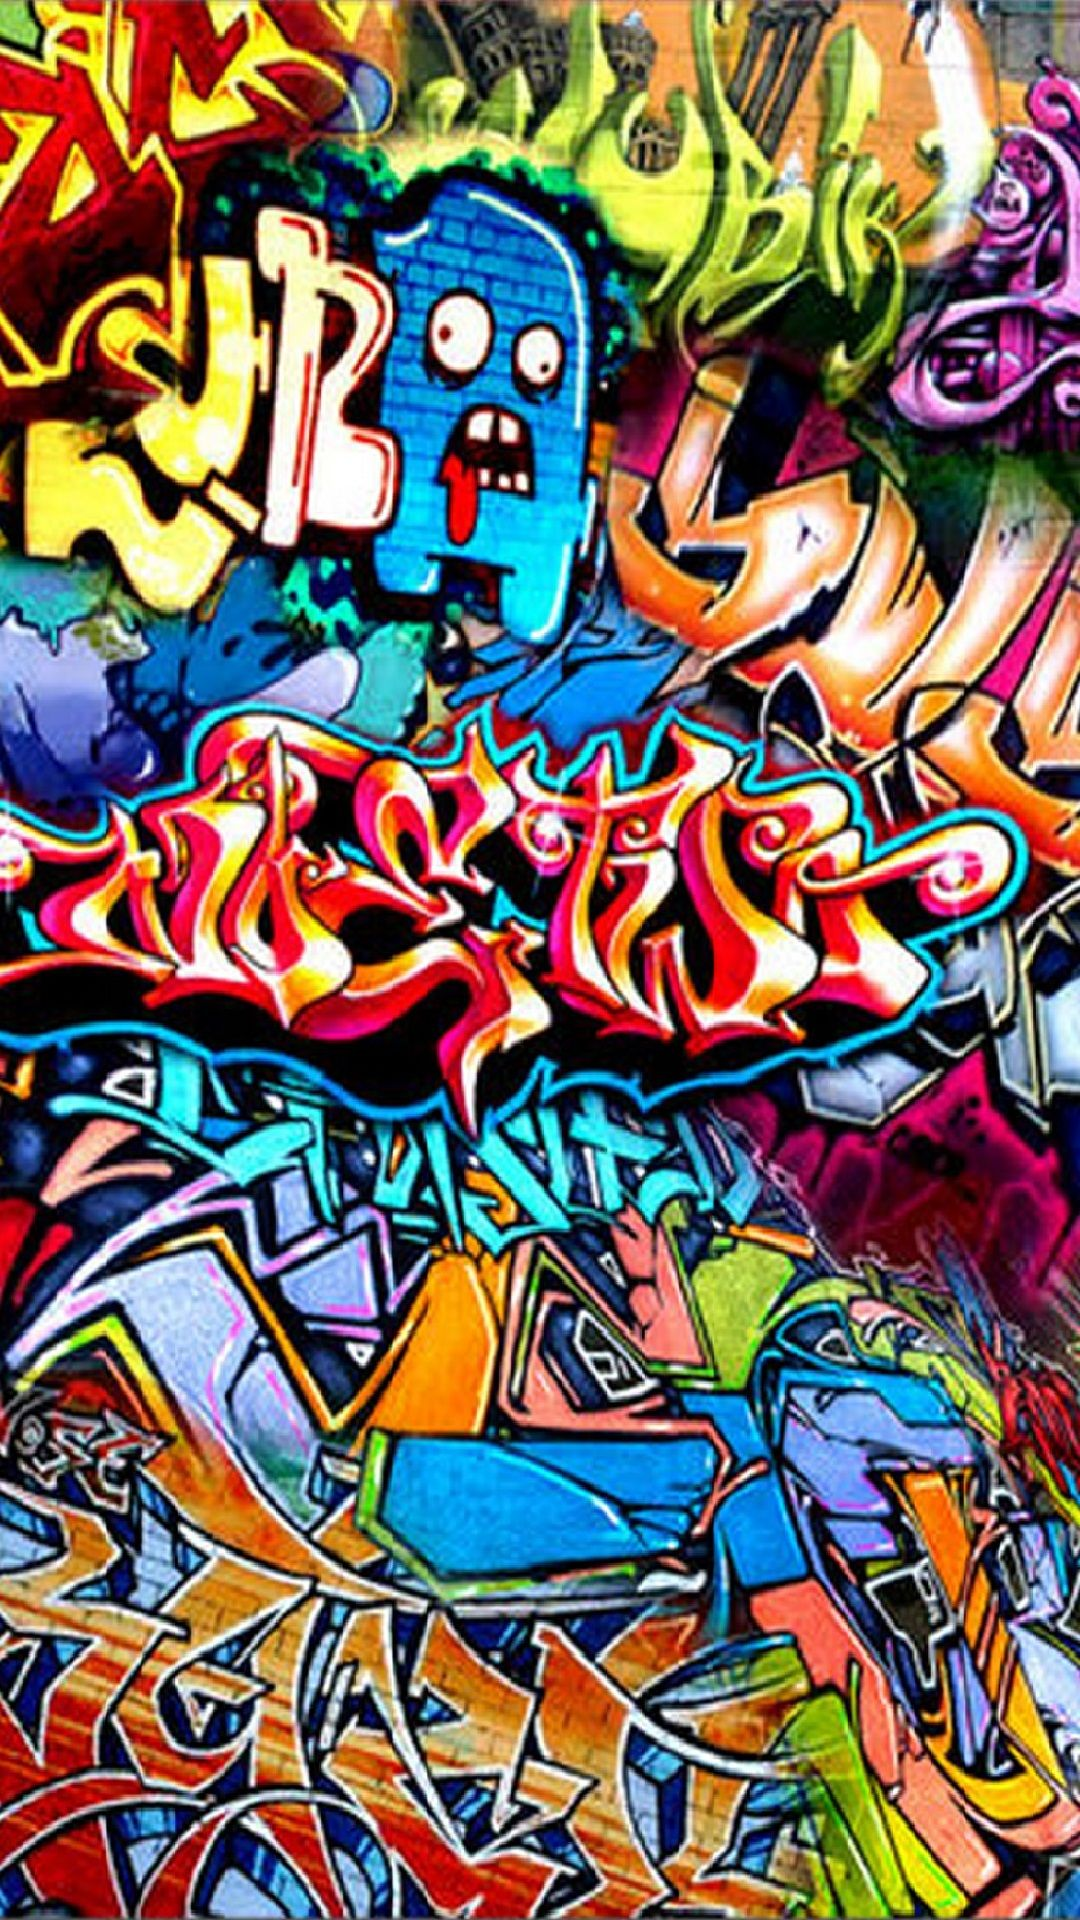 Graffiti Hd Wallpaper For Iphone Best Hd Wallpapers